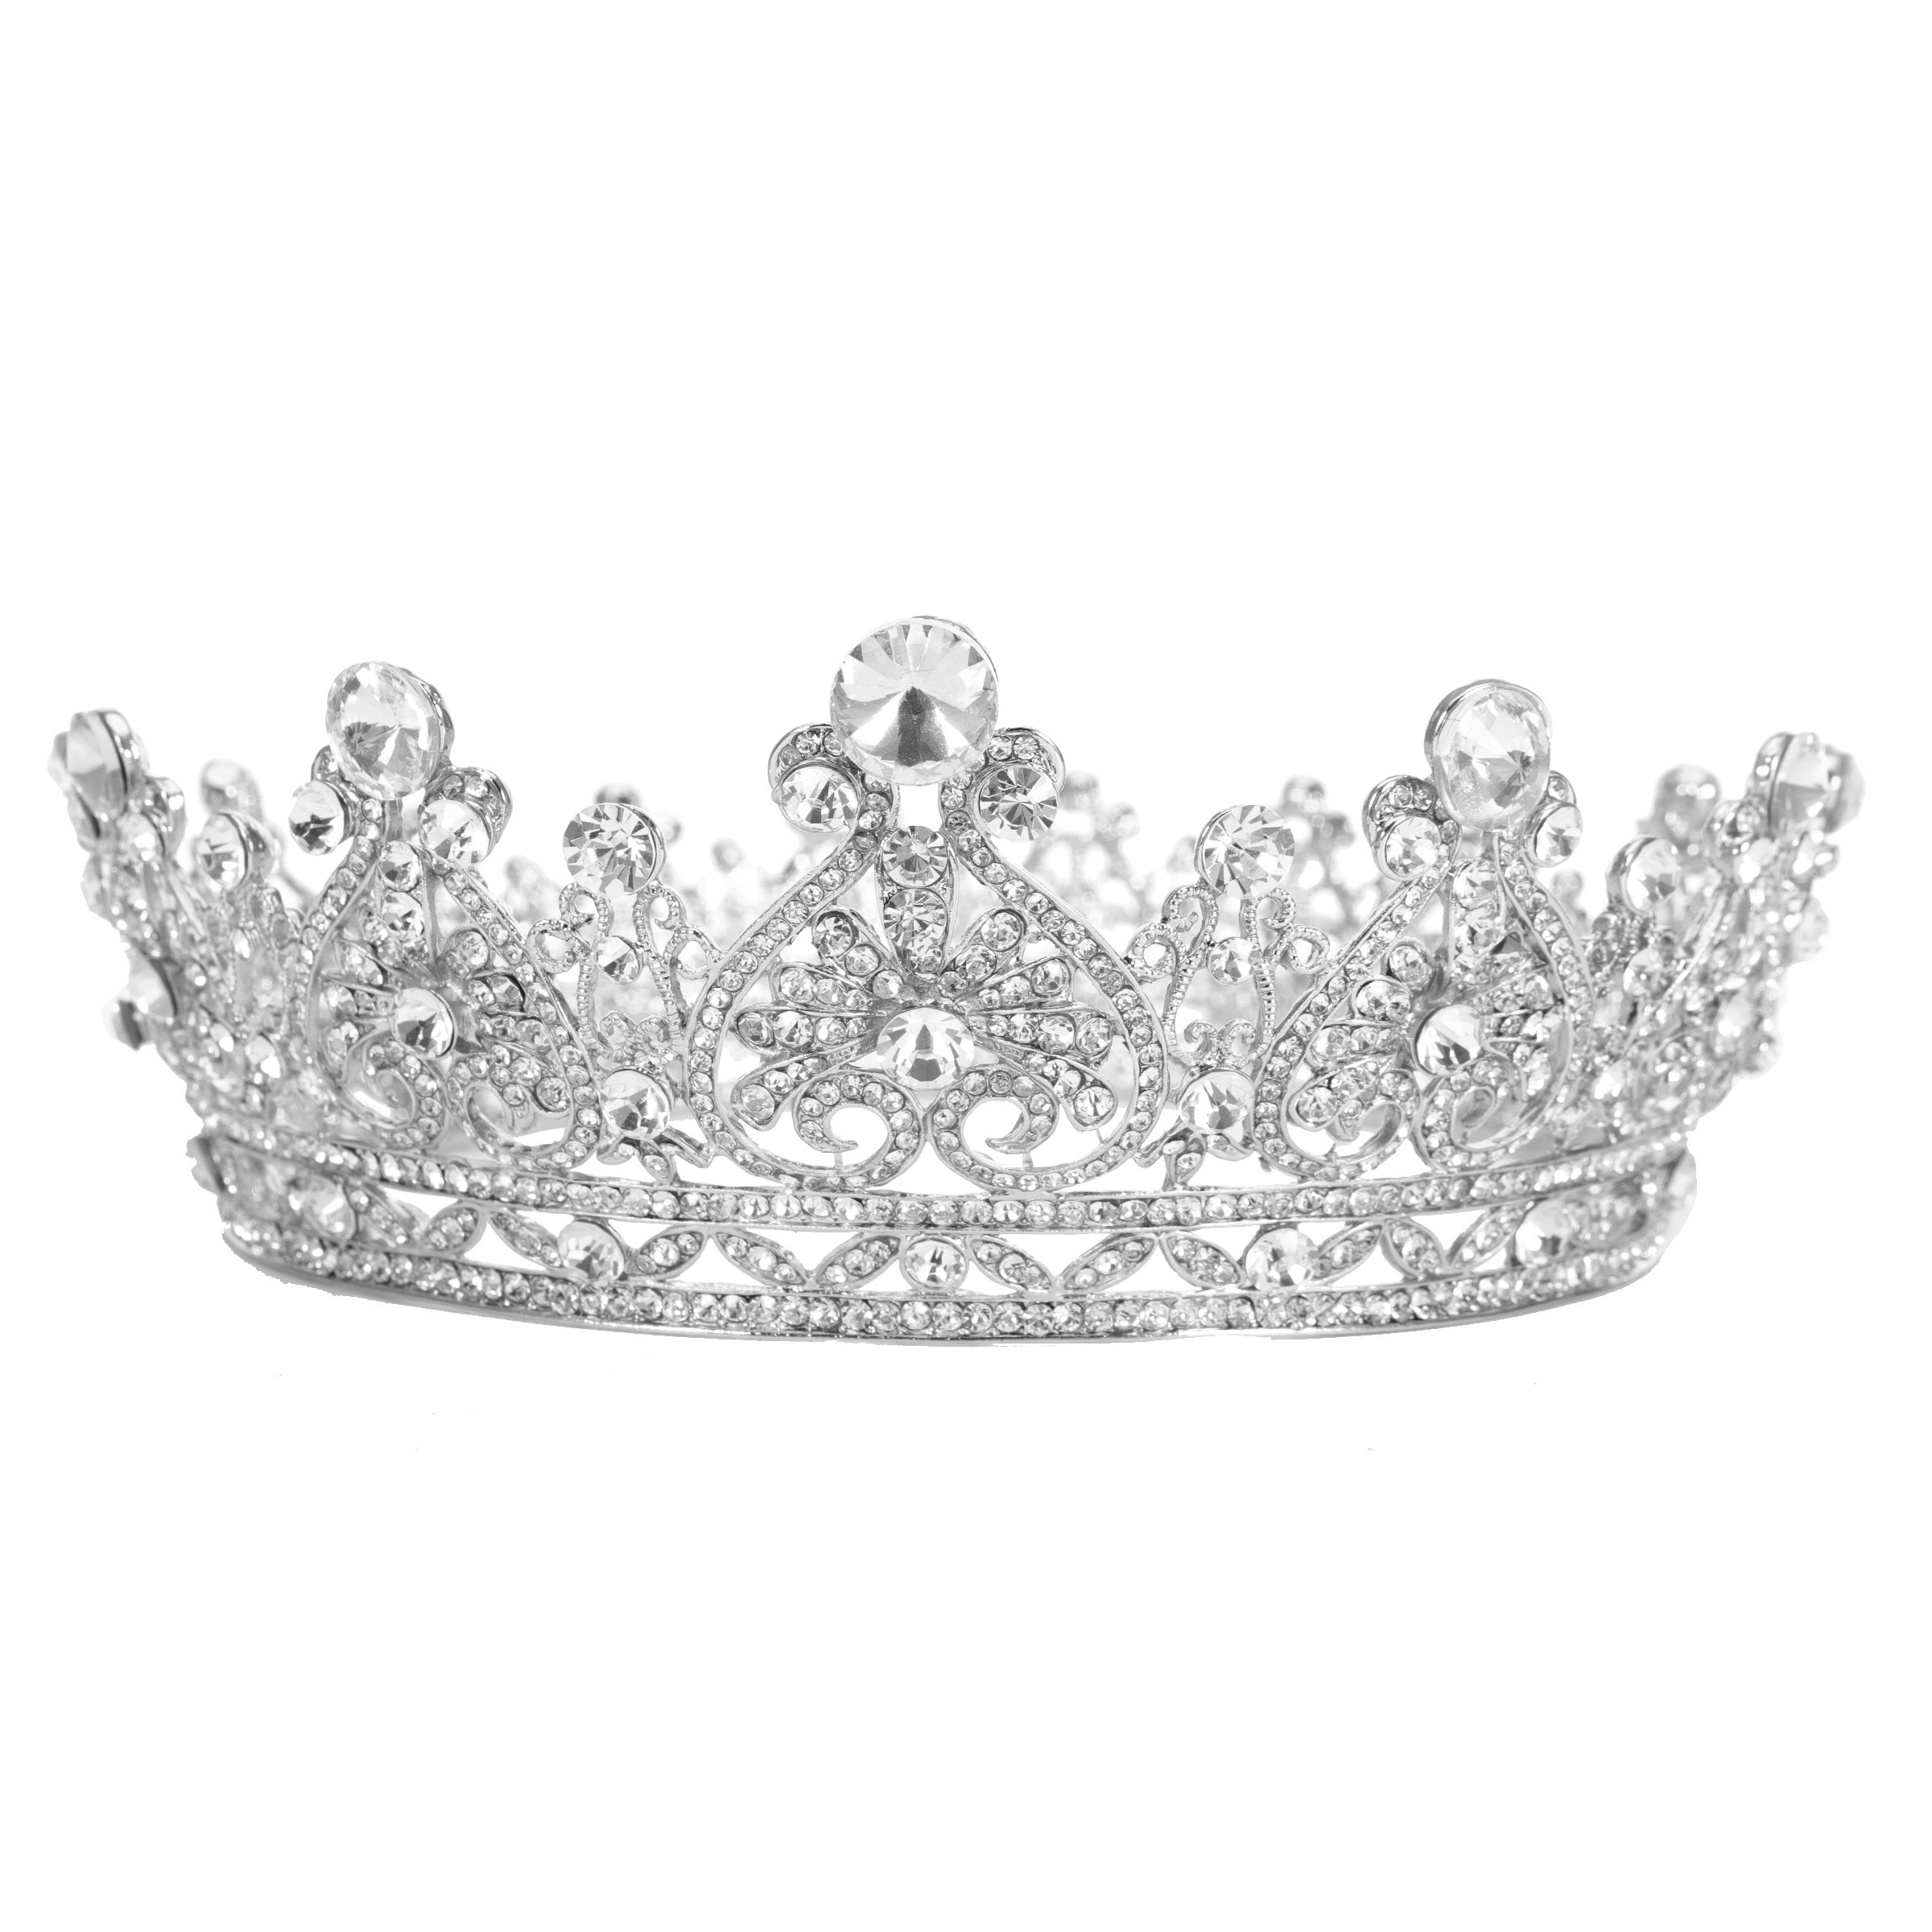 Stuff Rhinestones Crystal Round Crown Wedding Tiaras And Crowns Bridal Queen Tiara Pageant Accessory (Silver-plated)